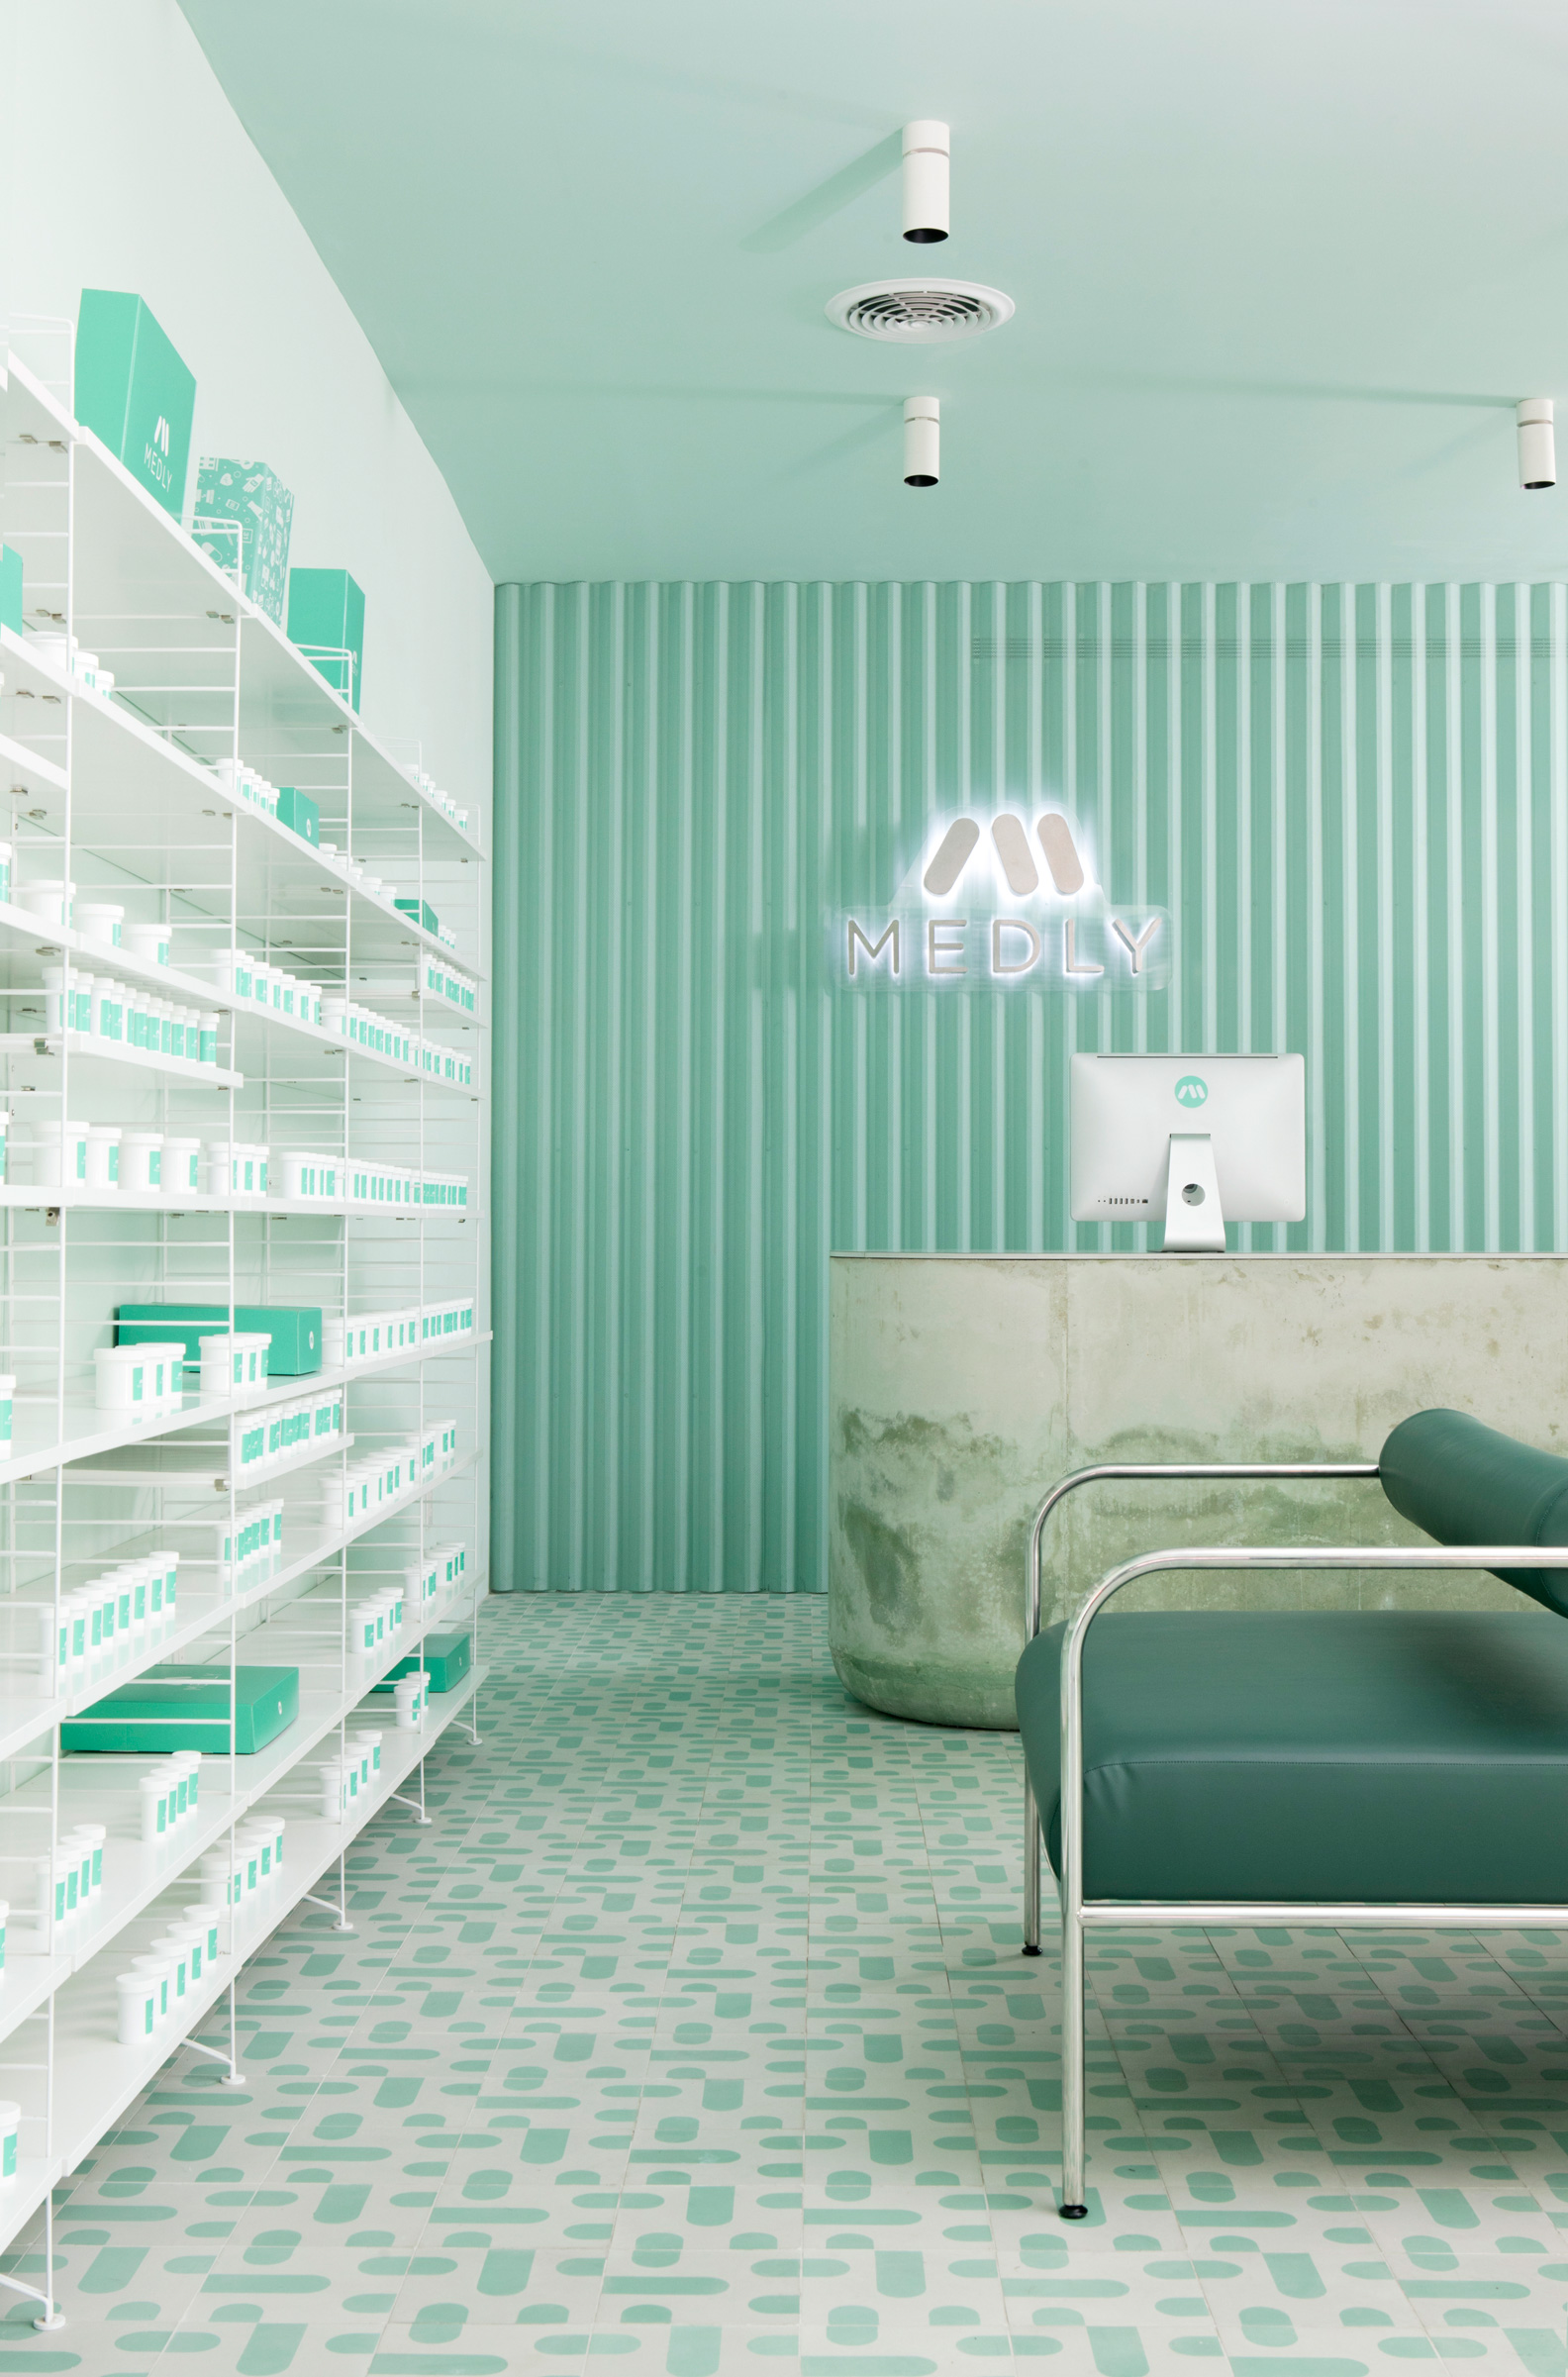 Medly Pharmacy Design